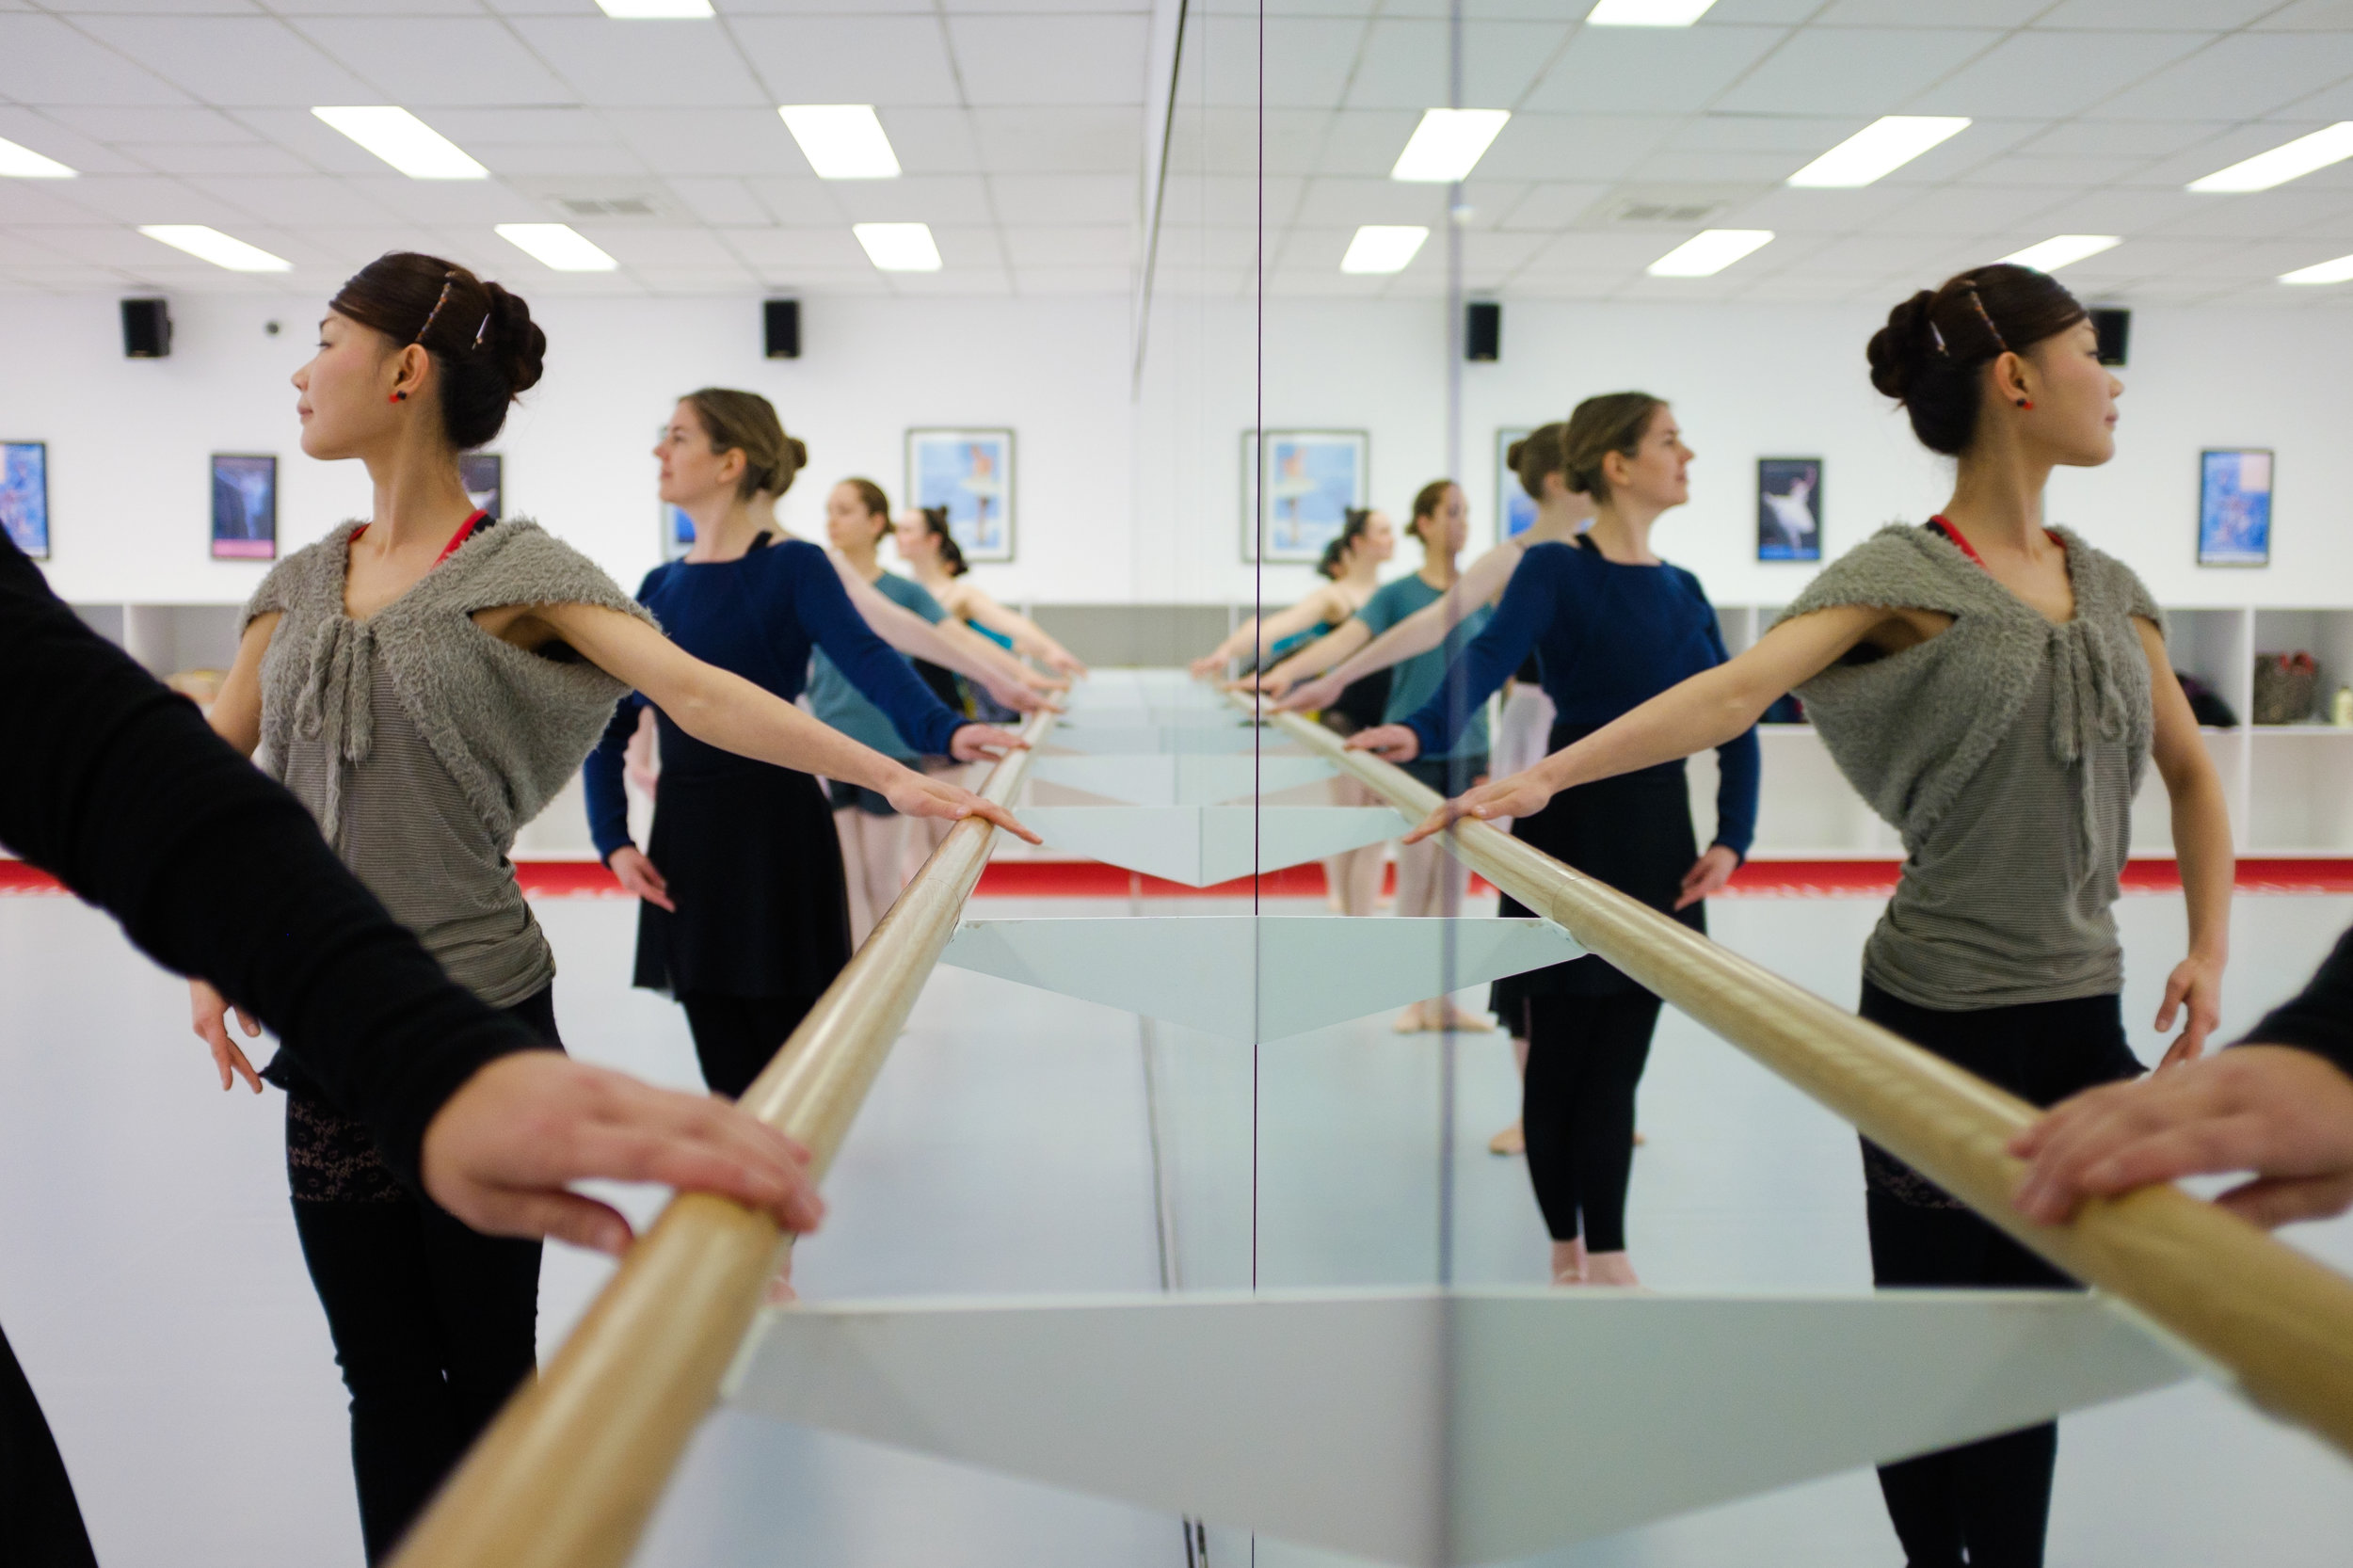 Image reproduced with permission of Elancé Adult Ballet School